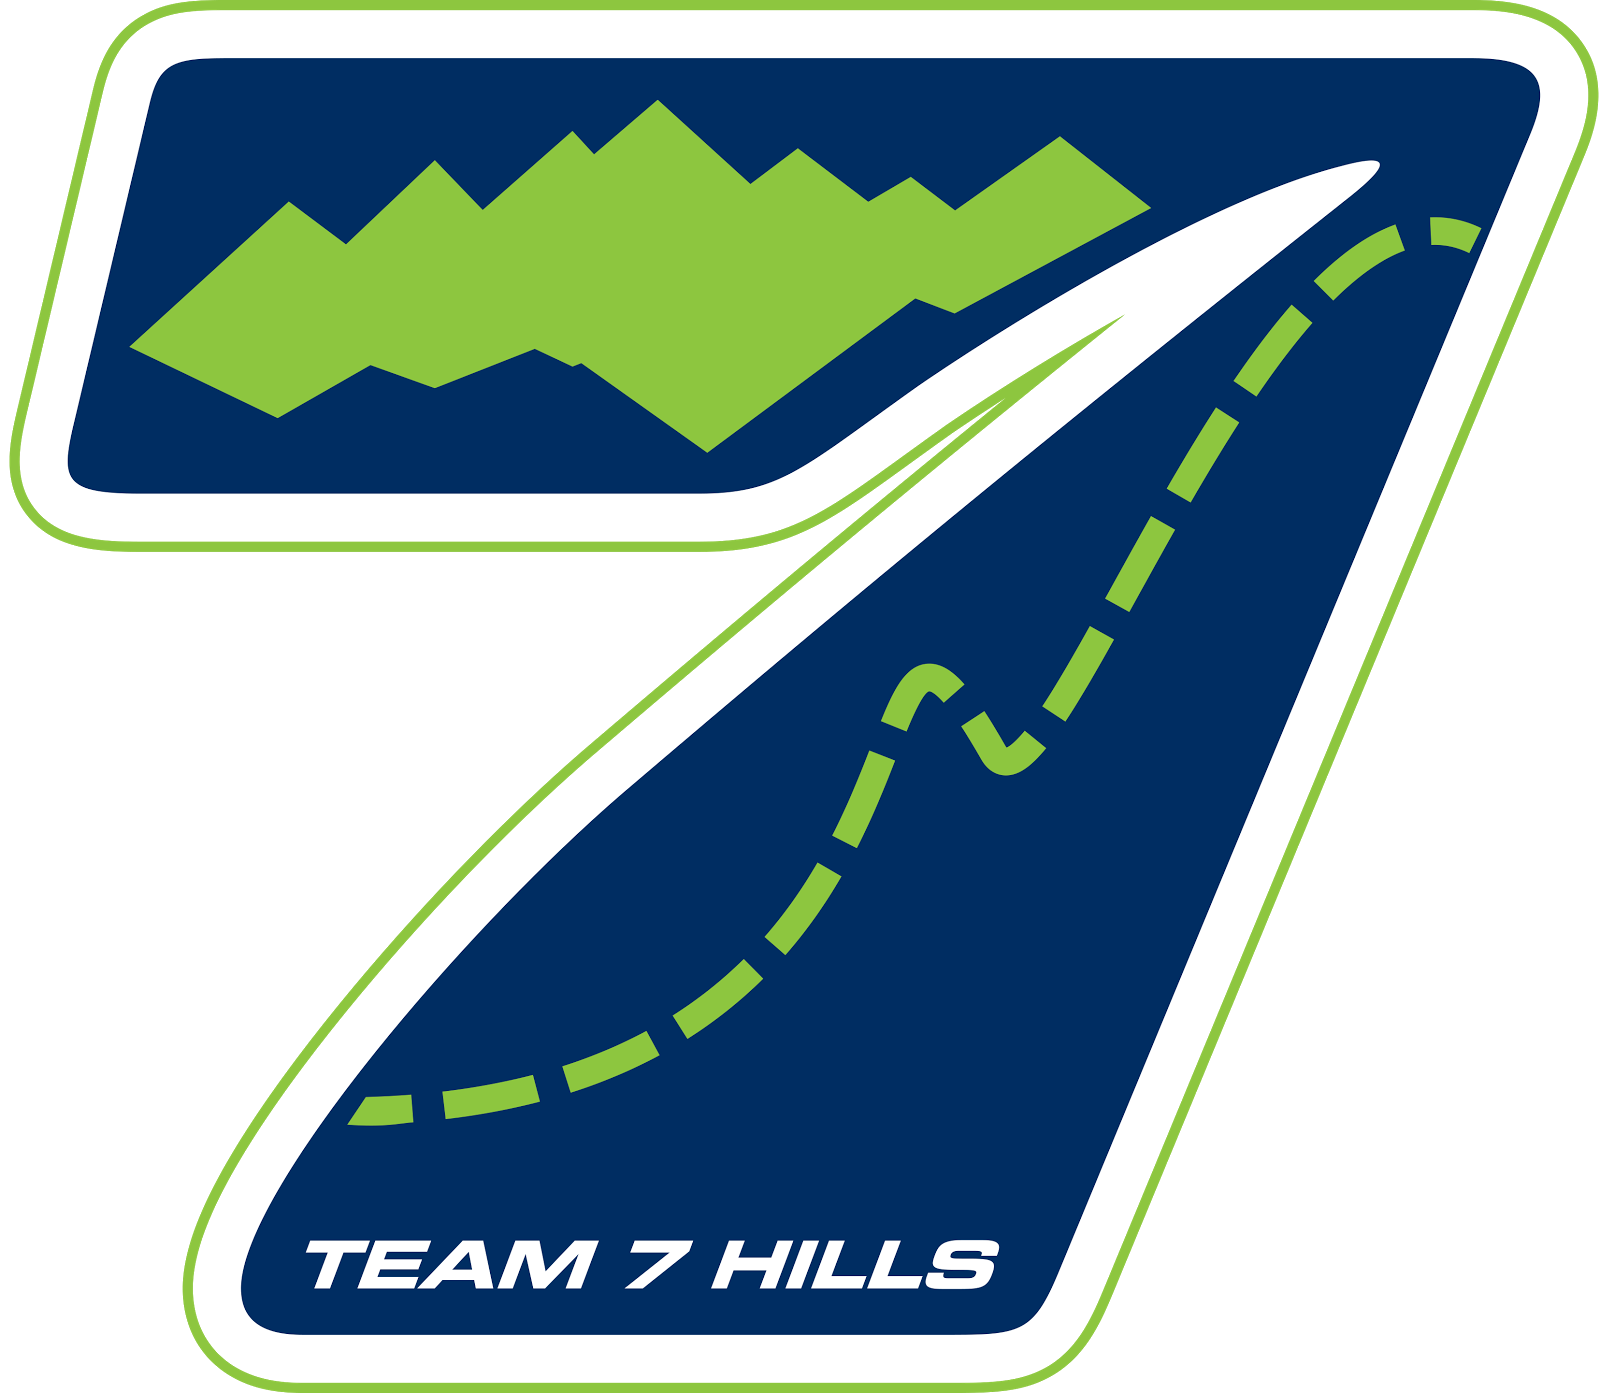 Team 7Hills - Seven Hills Running Shop